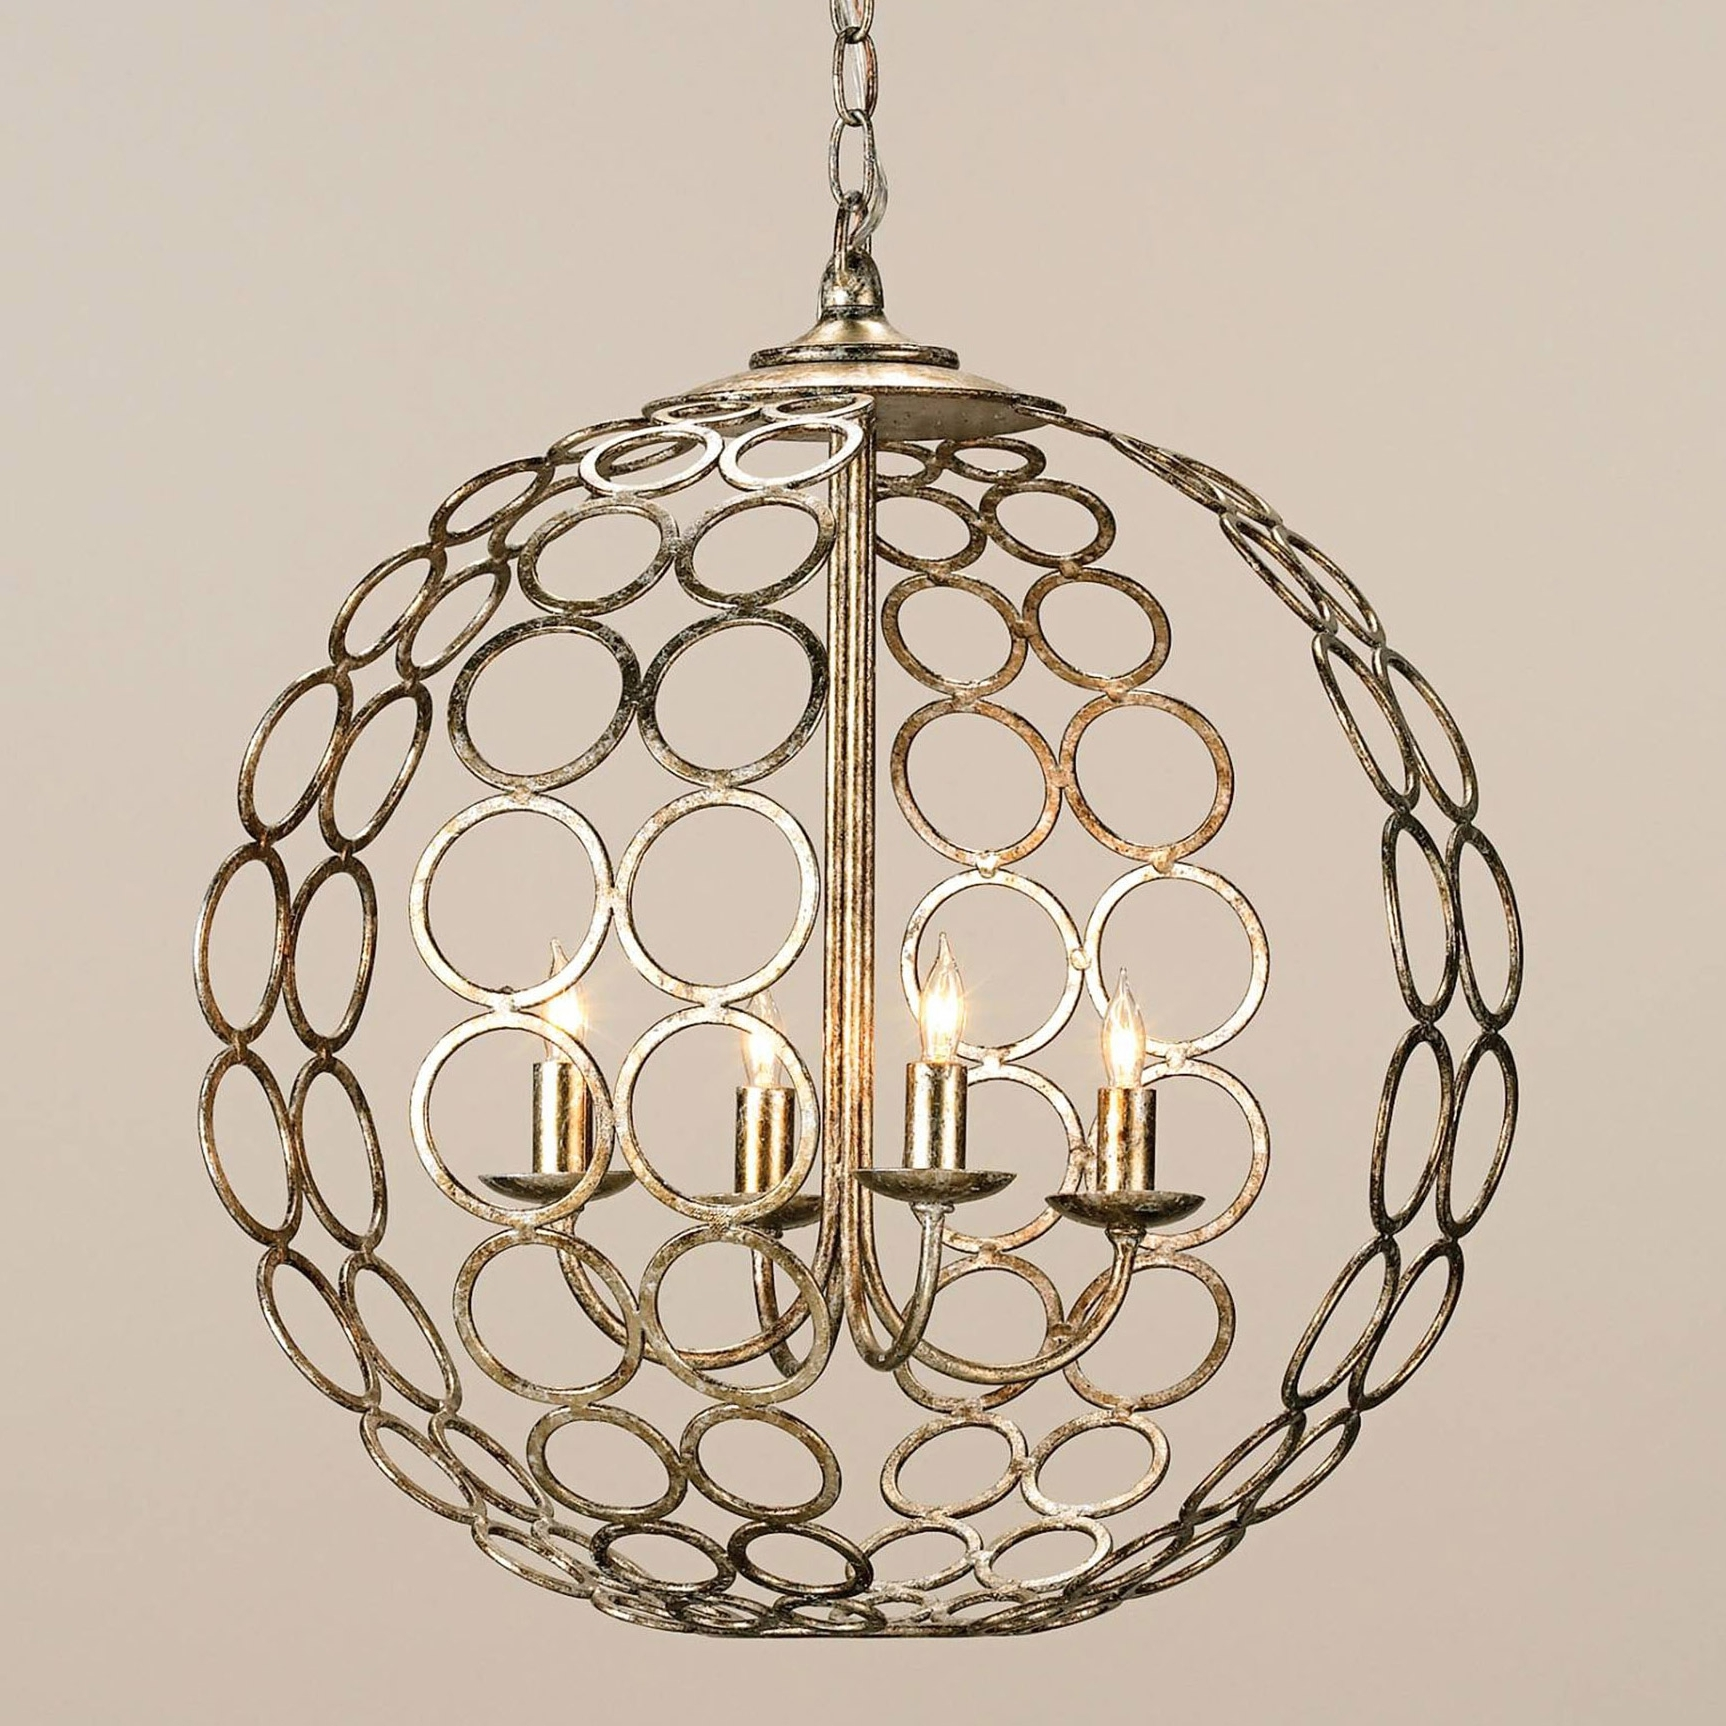 Orb Chandeliers Pertaining To Latest And Company 9961 Tartufo Orb Chandelier (View 8 of 20)